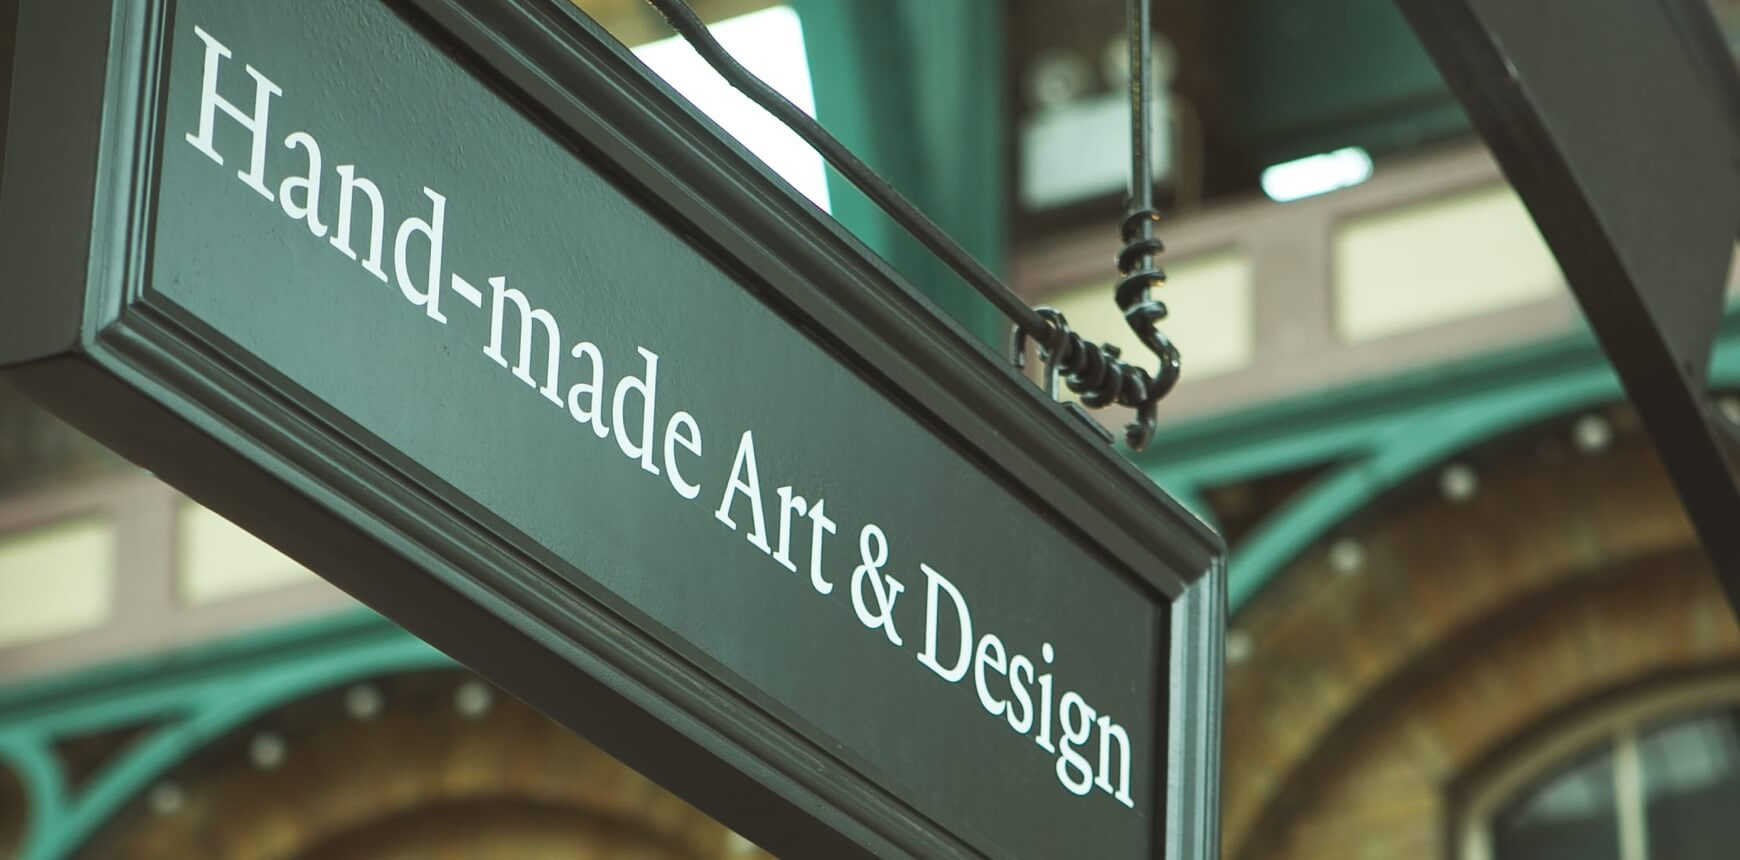 Hand-made Art & Design Sign